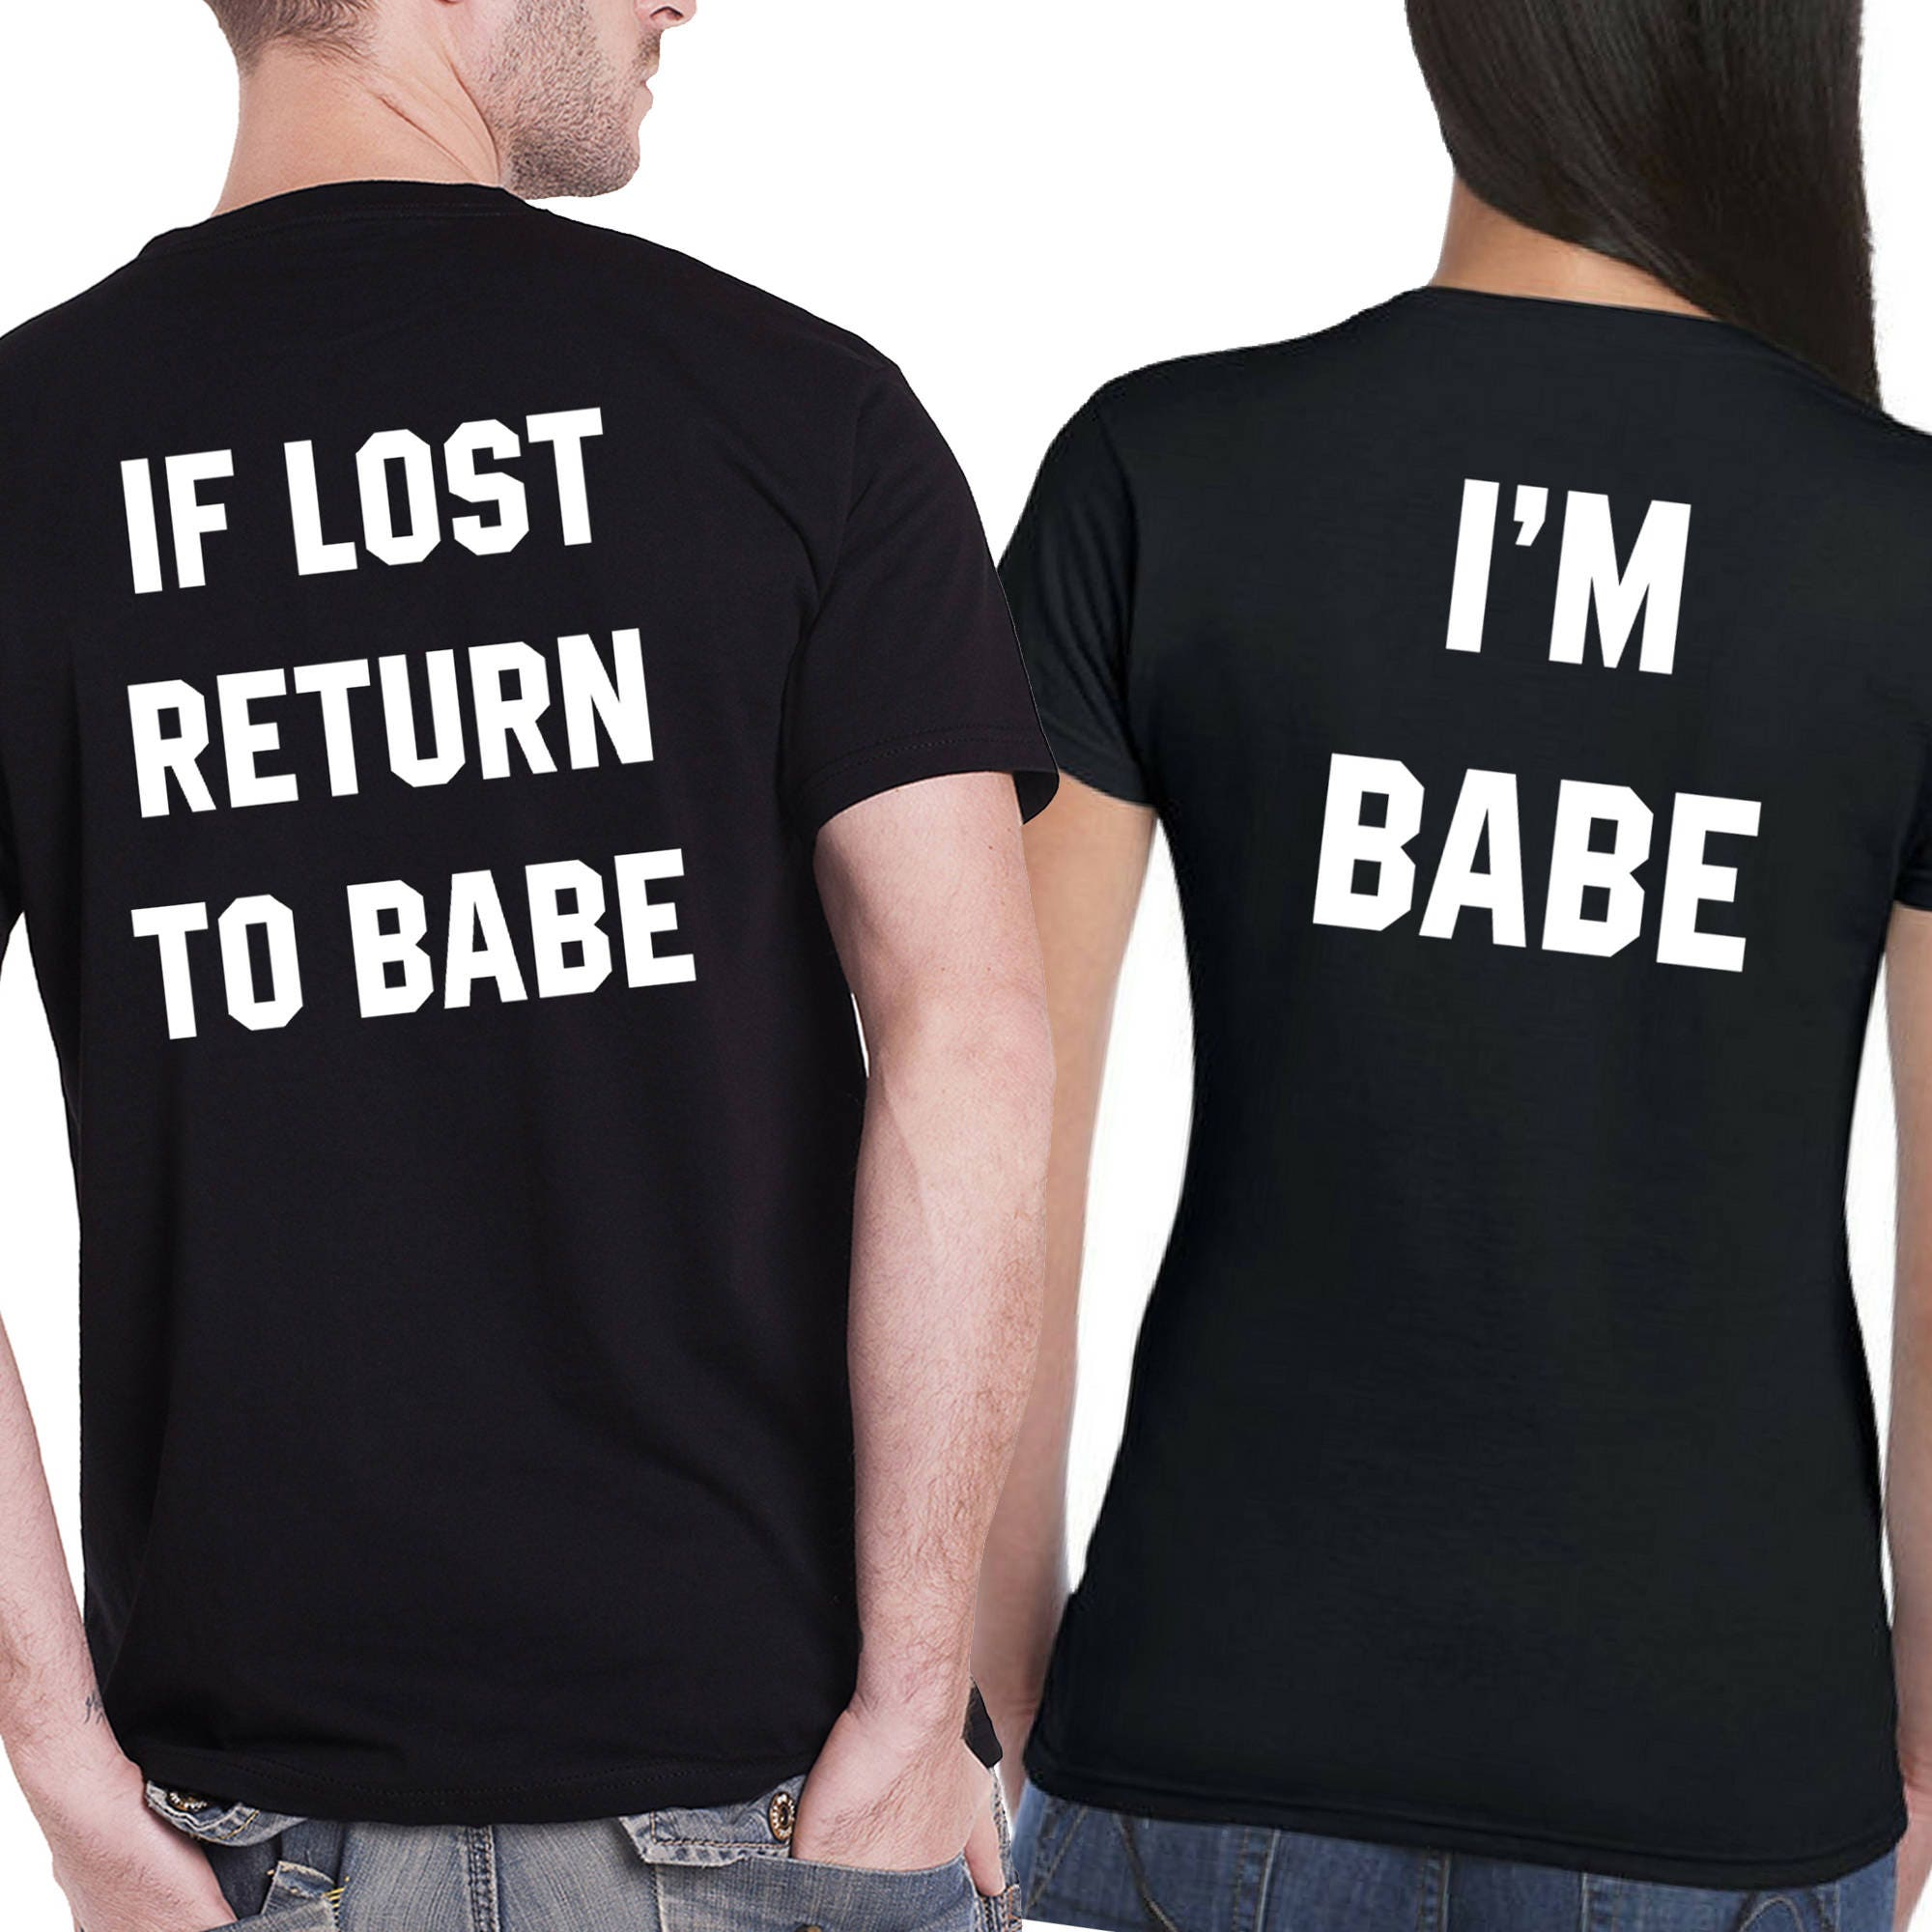 697027d1 Matching If Lost Return to Babe T Shirts Matching Tops Cute | Etsy